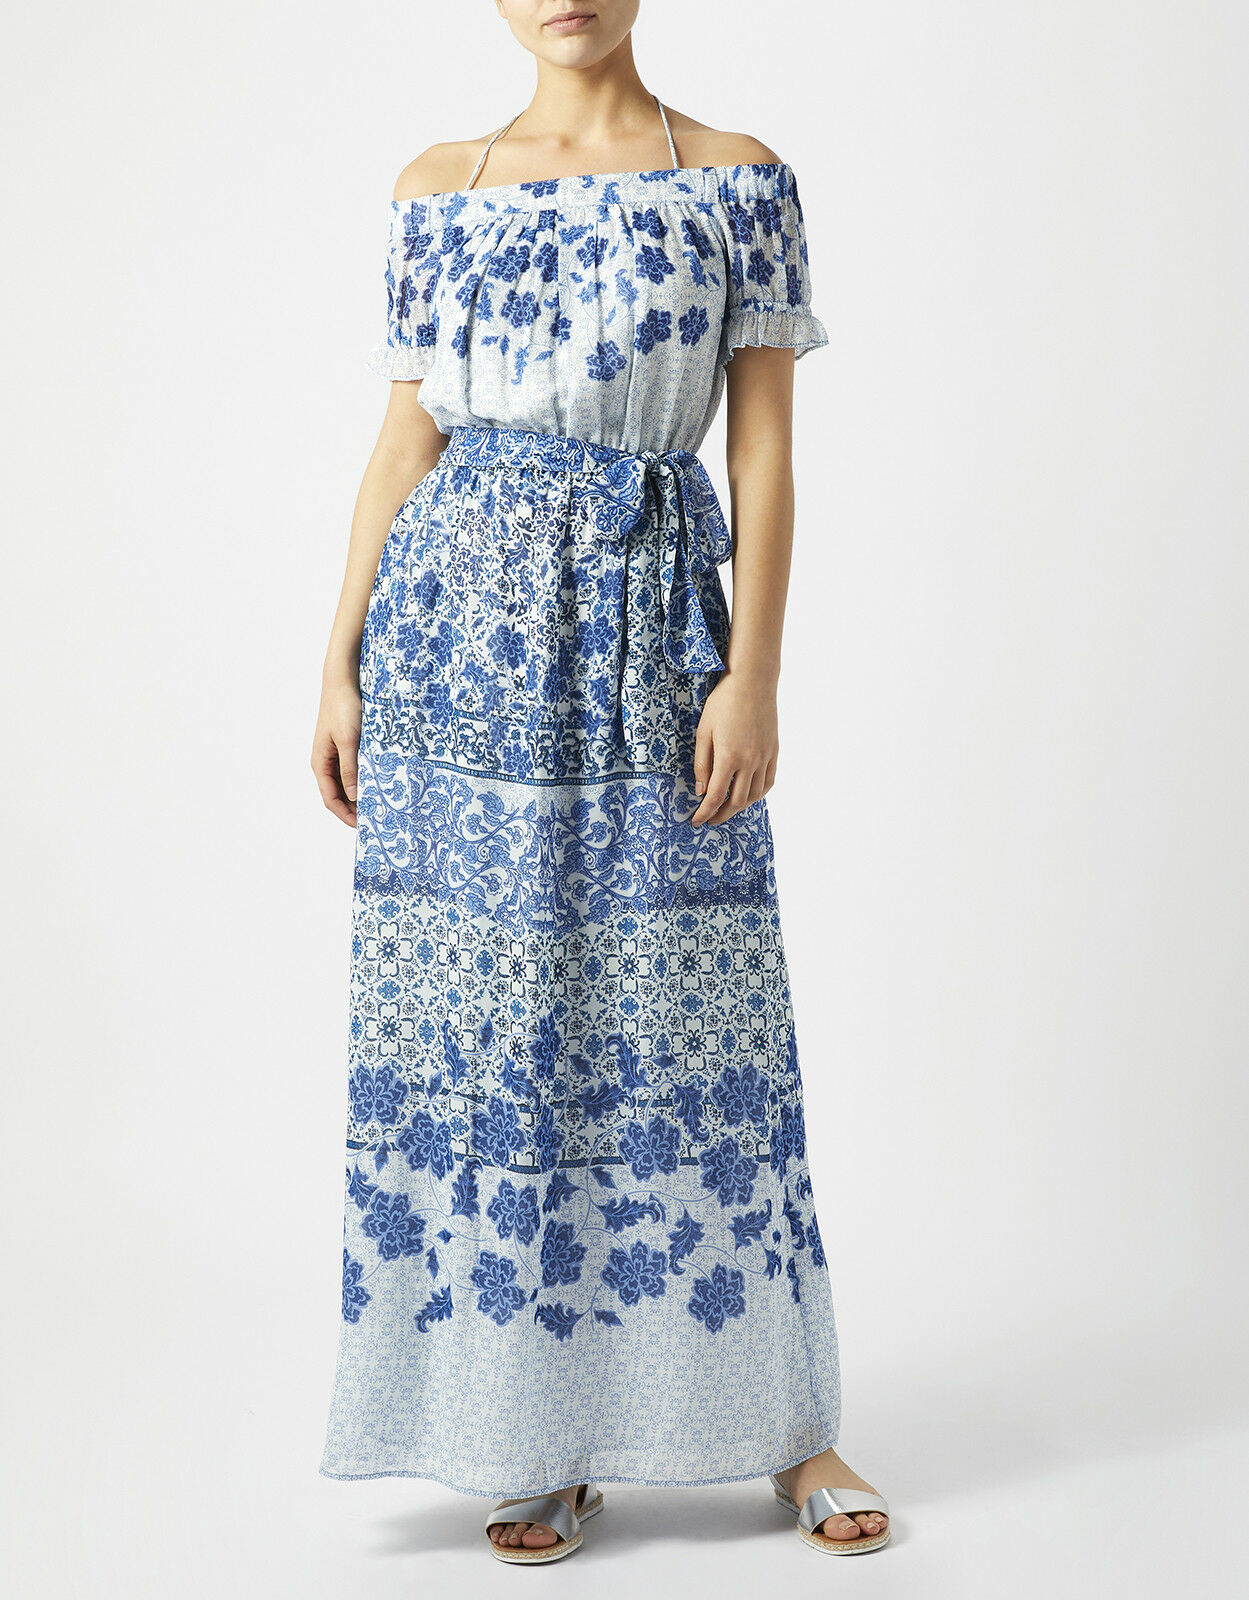 rotUCED   BNWT MONSOON Riley Floral Print Maxi Dress Größe 10 (Blau).   RRP